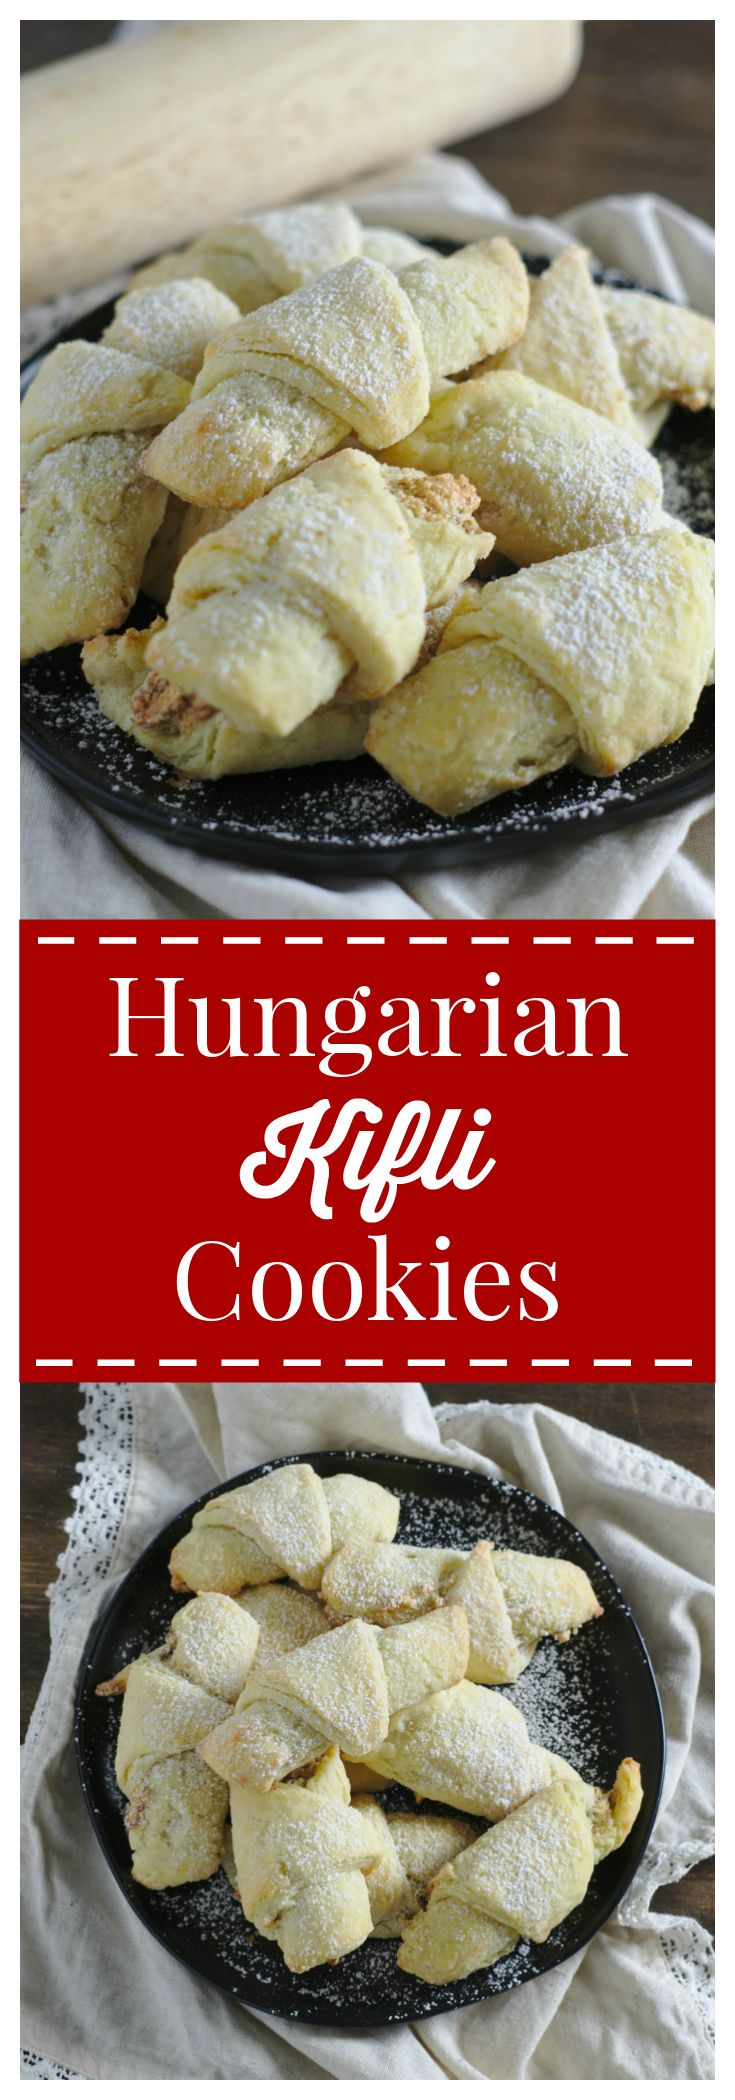 Hungarian Kifli Cookies – Rich and flaky traditional Hungarian crescent cookies filled with a light walnut filling. Perfect Christmas cookies! #hungarian #christmas #cookies #kifli #crescent